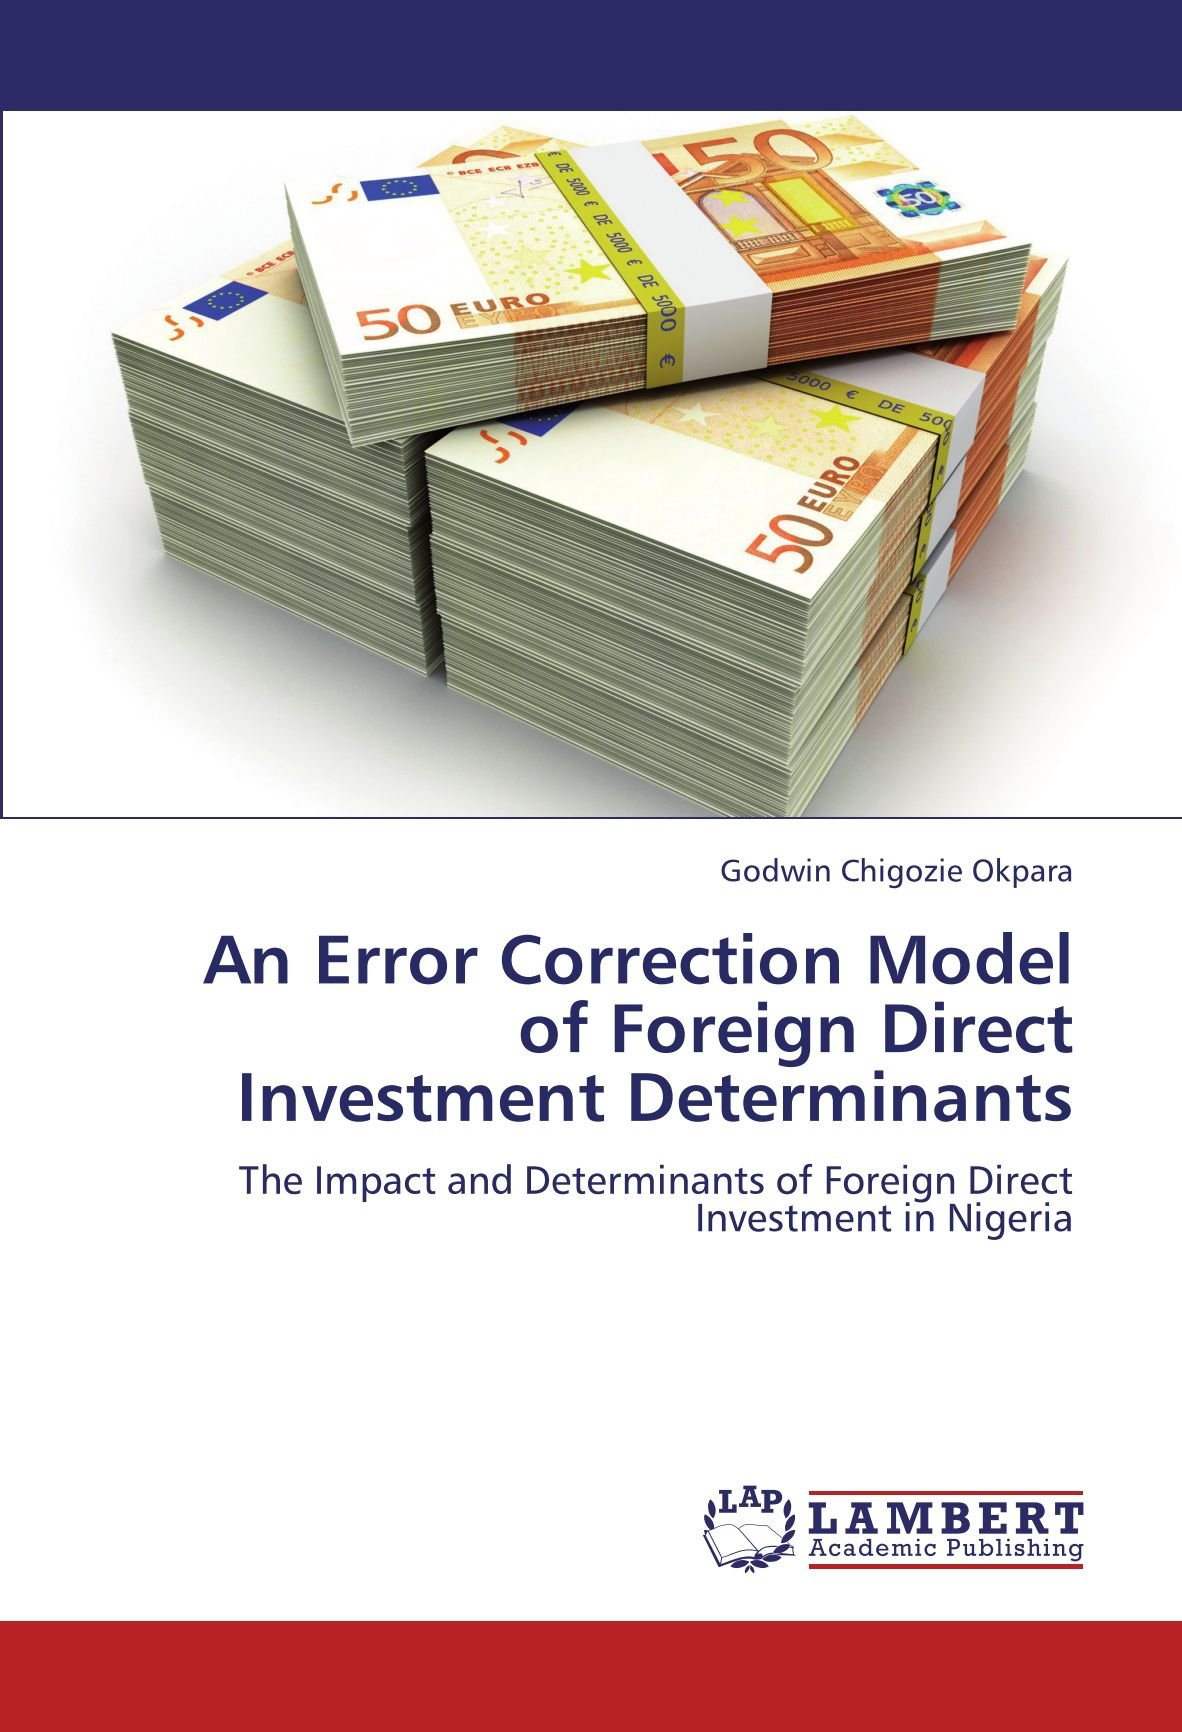 An Error Correction Model of Foreign Direct Investment Determinants: The Impact and Determinants of Foreign Direct Investment in Nigeria ebook